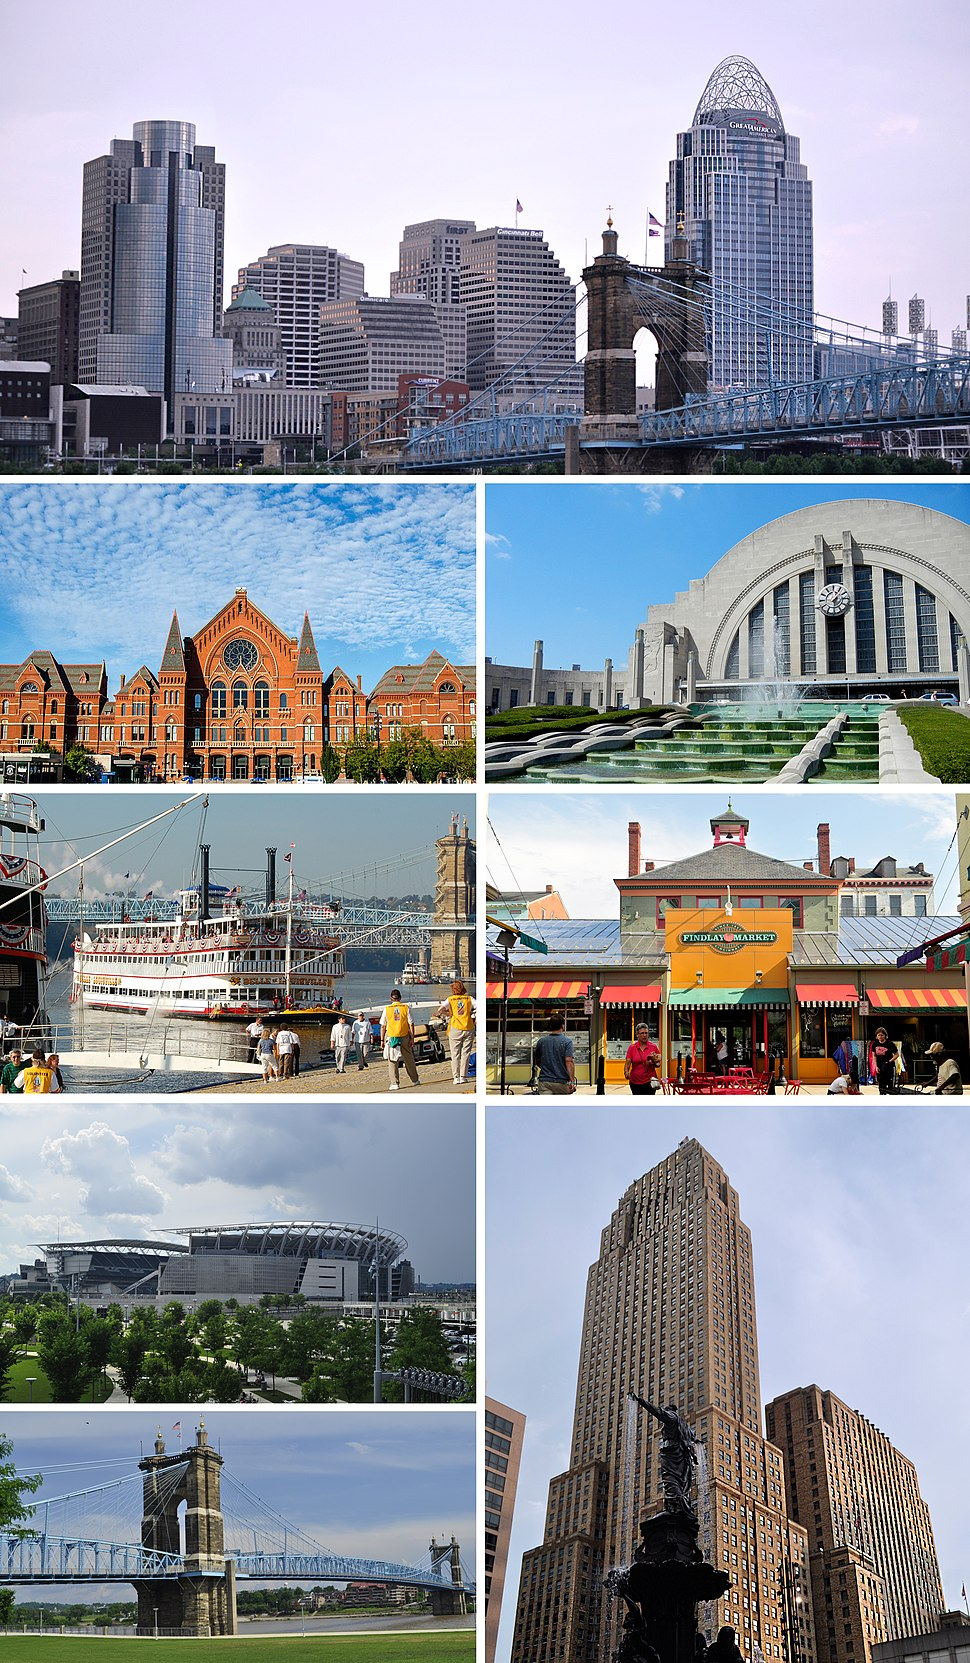 Clockwise, from top: Cincinnati Skyline, Union Terminal, Findlay Market, the Carew Tower with the Tyler Davidson Fountain in the foreground, the John A. Roebling Suspension Bridge, the Paul Brown Stadium, vintage steamboats docked along the Ohio River and the Cincinnati Music Hall